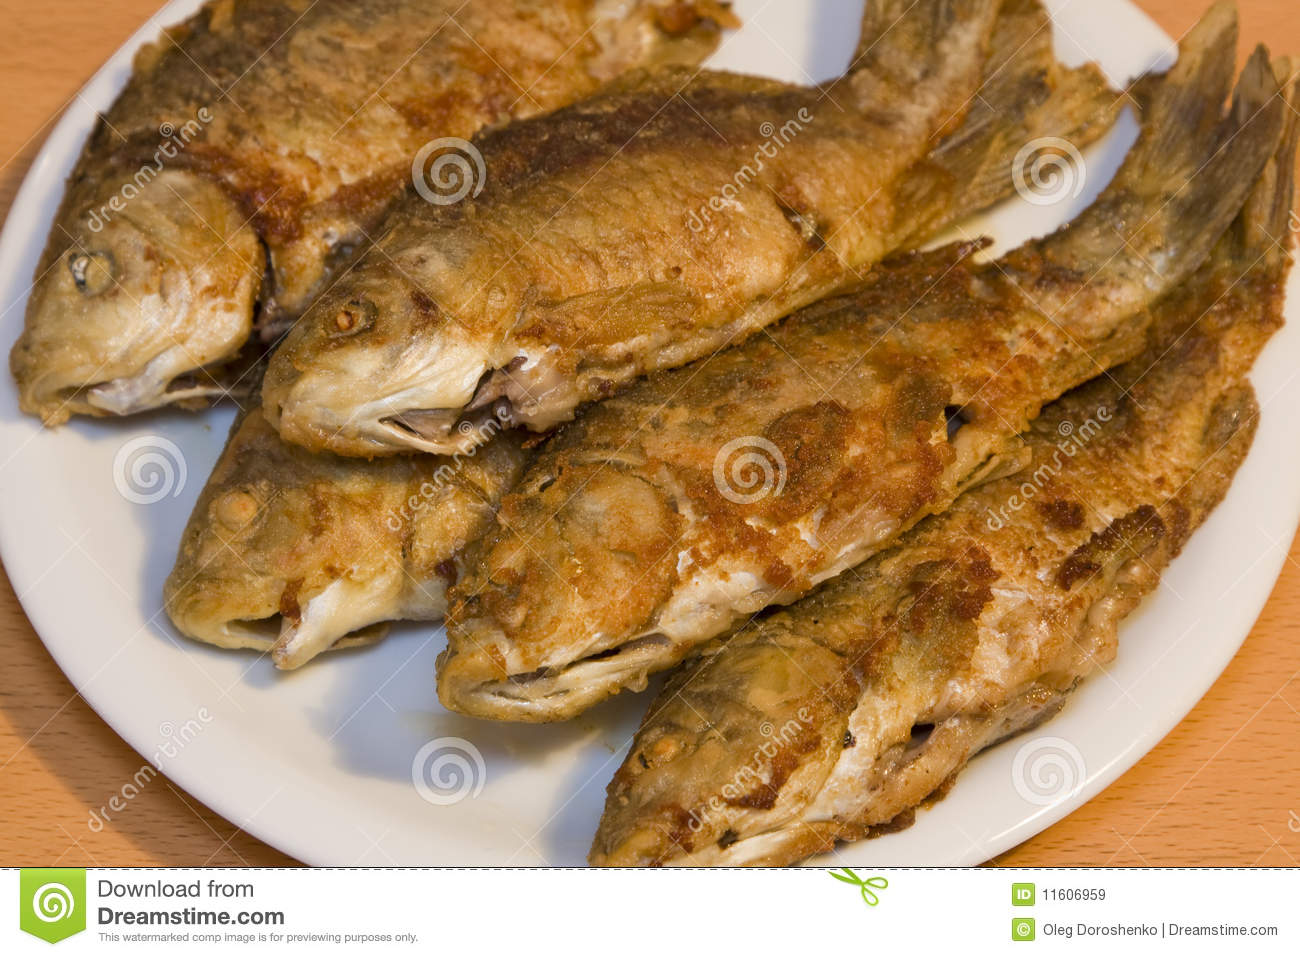 Fried fish stock image image of group carp parsley for How many calories in fried fish